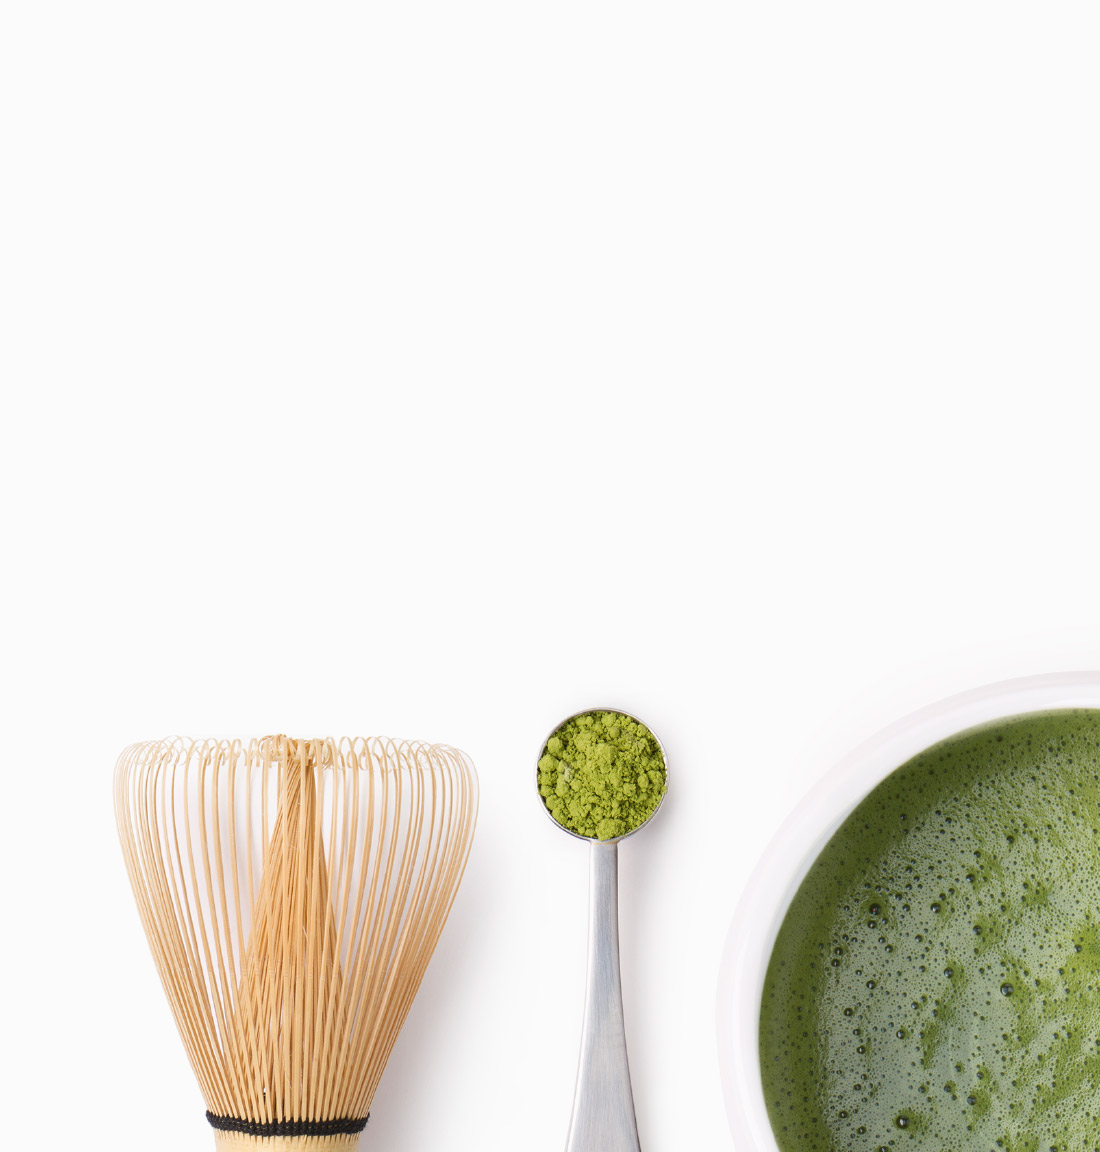 Top of matcha whisk, matcha Perfect Spoon filled with matcha and half a cup of match tea.